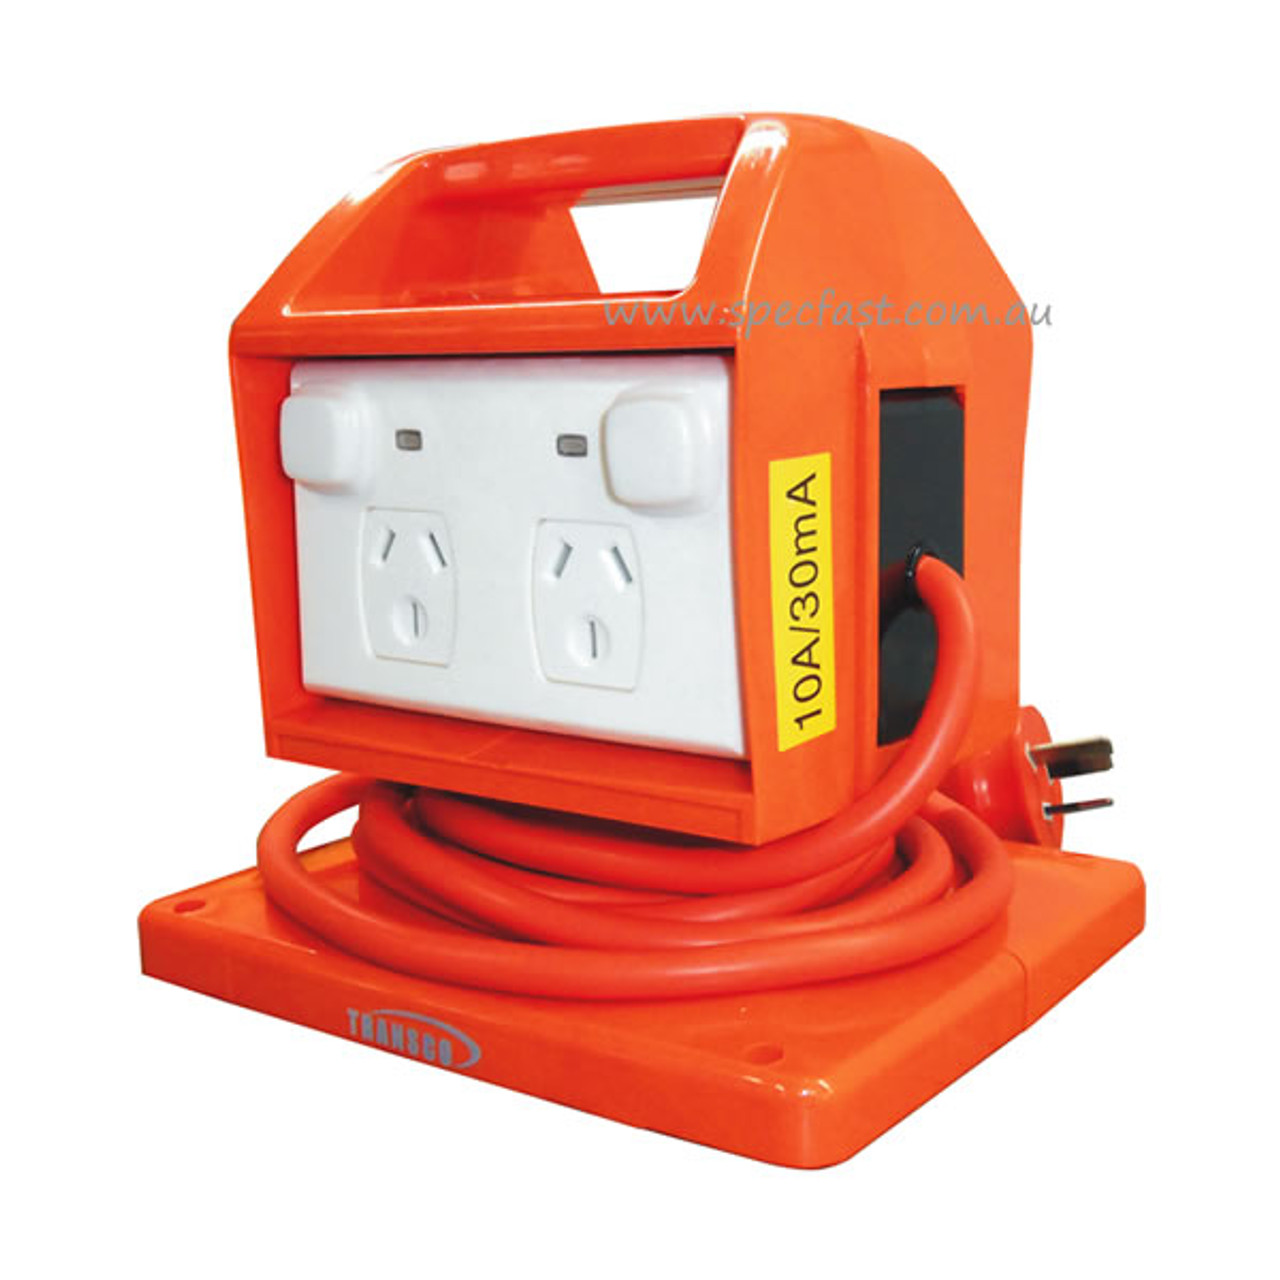 Portable Power Outlet with RCD for Industry and Building Sites